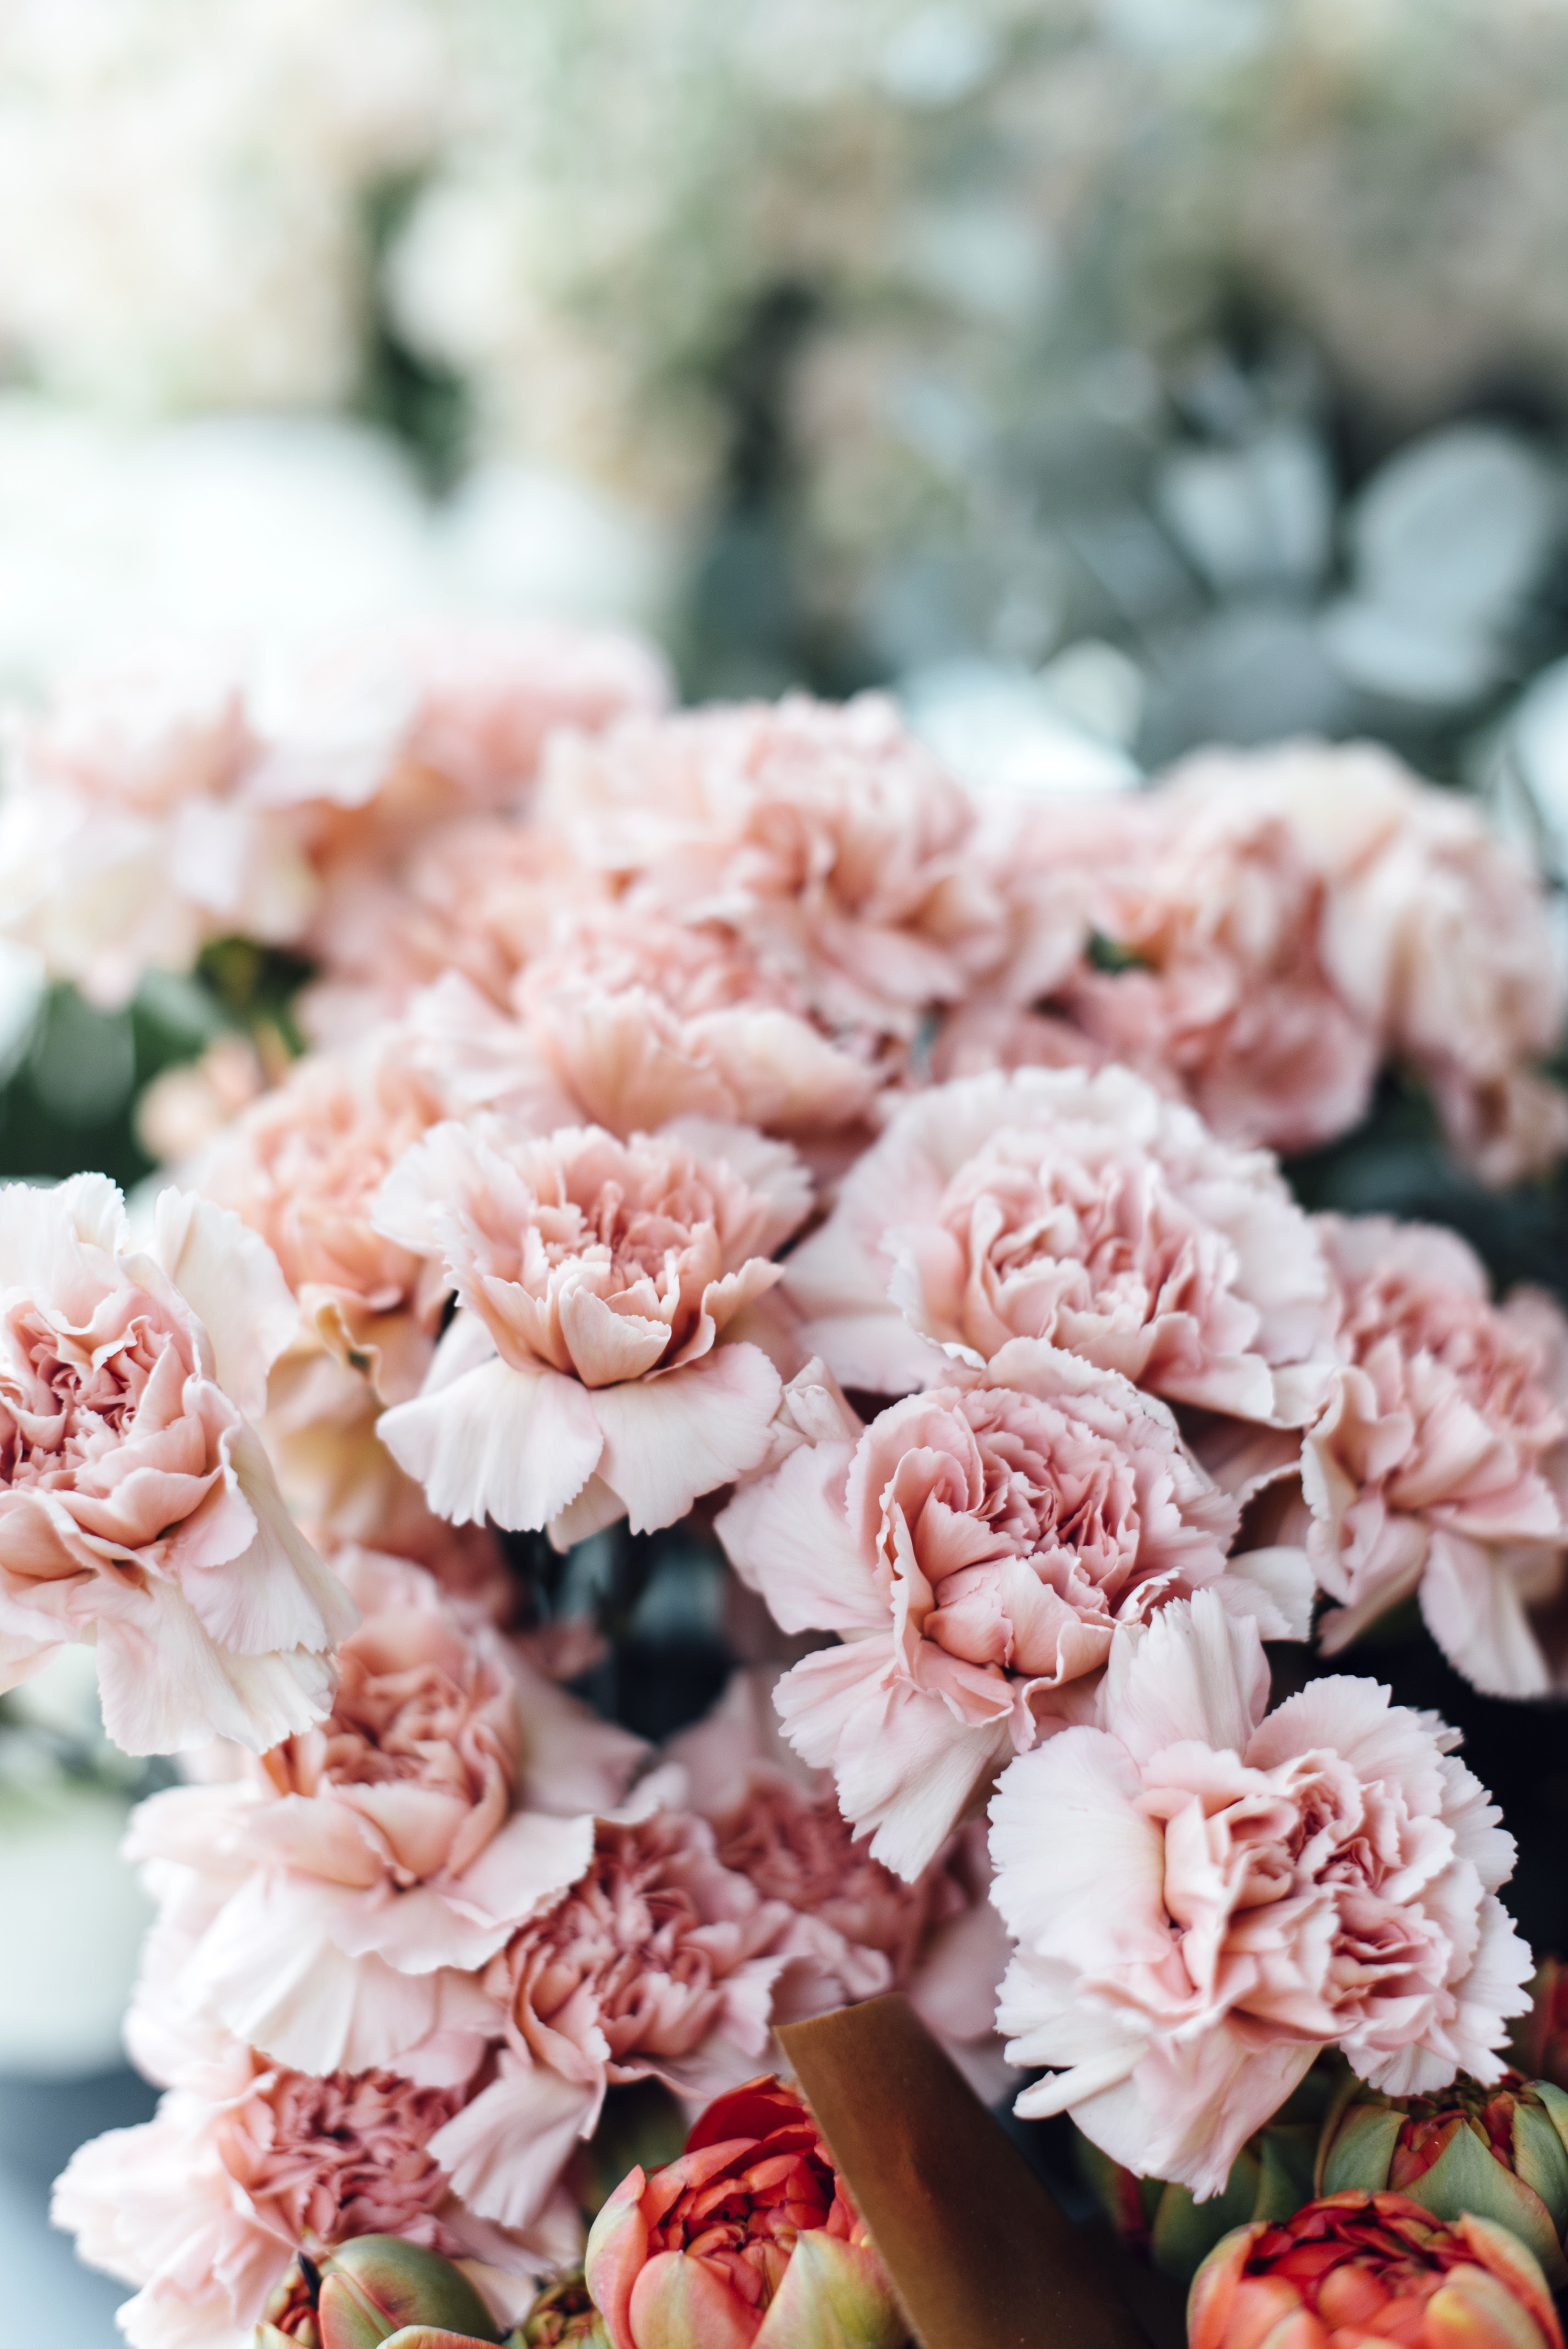 6 reasons to bring back the carnation why carnations should make a 6 reasons to bring back the carnation why carnations should make a comeback izmirmasajfo